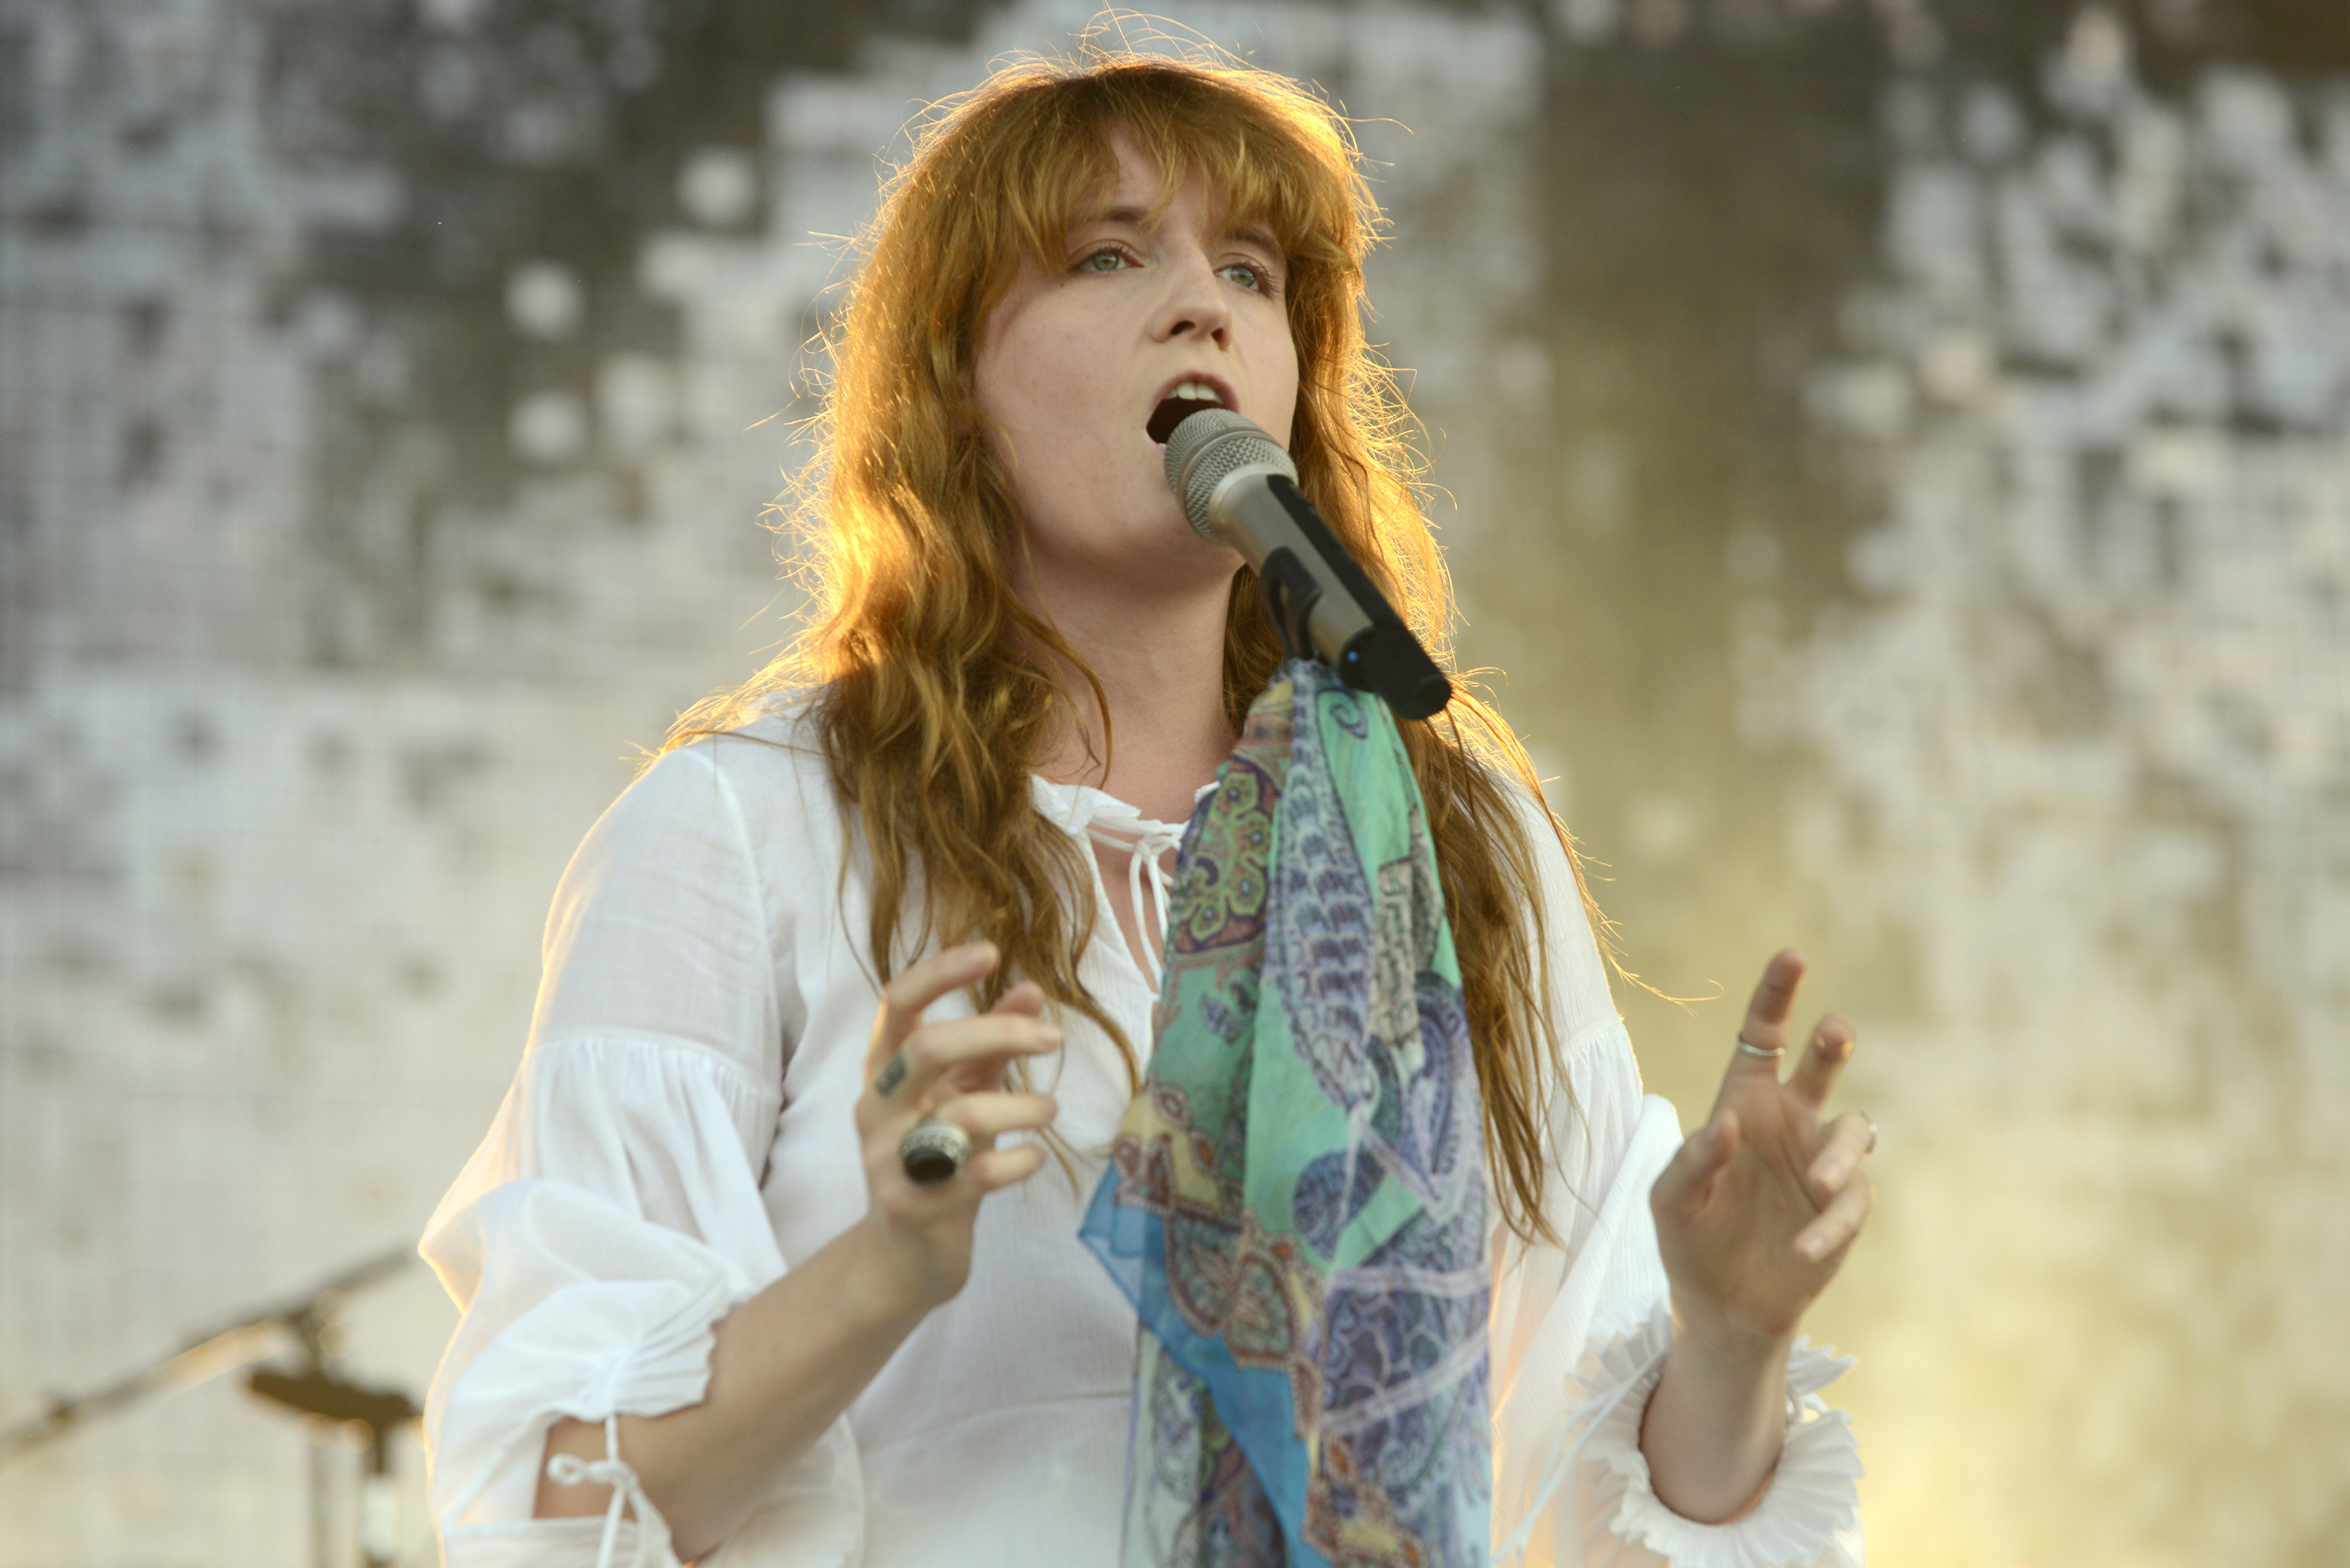 Florence Welch performs during the 2015 Bonnaroo Music & Arts Festival on June 14, 2015 in Manchester, Tennessee.